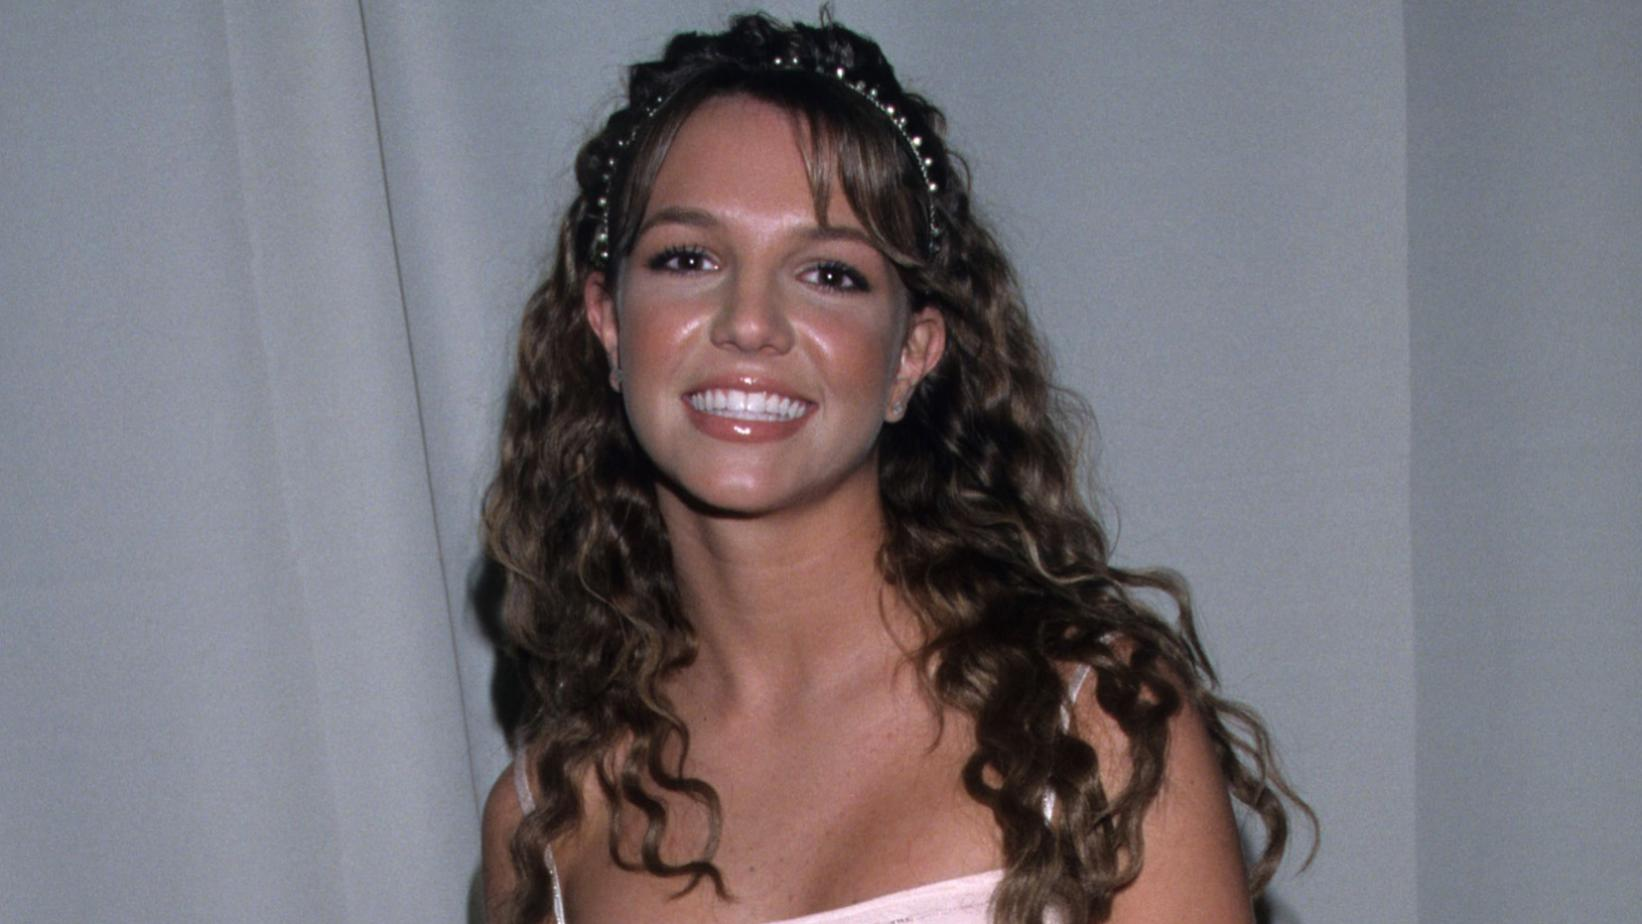 Britney Spears at the American Music Awards in 1999